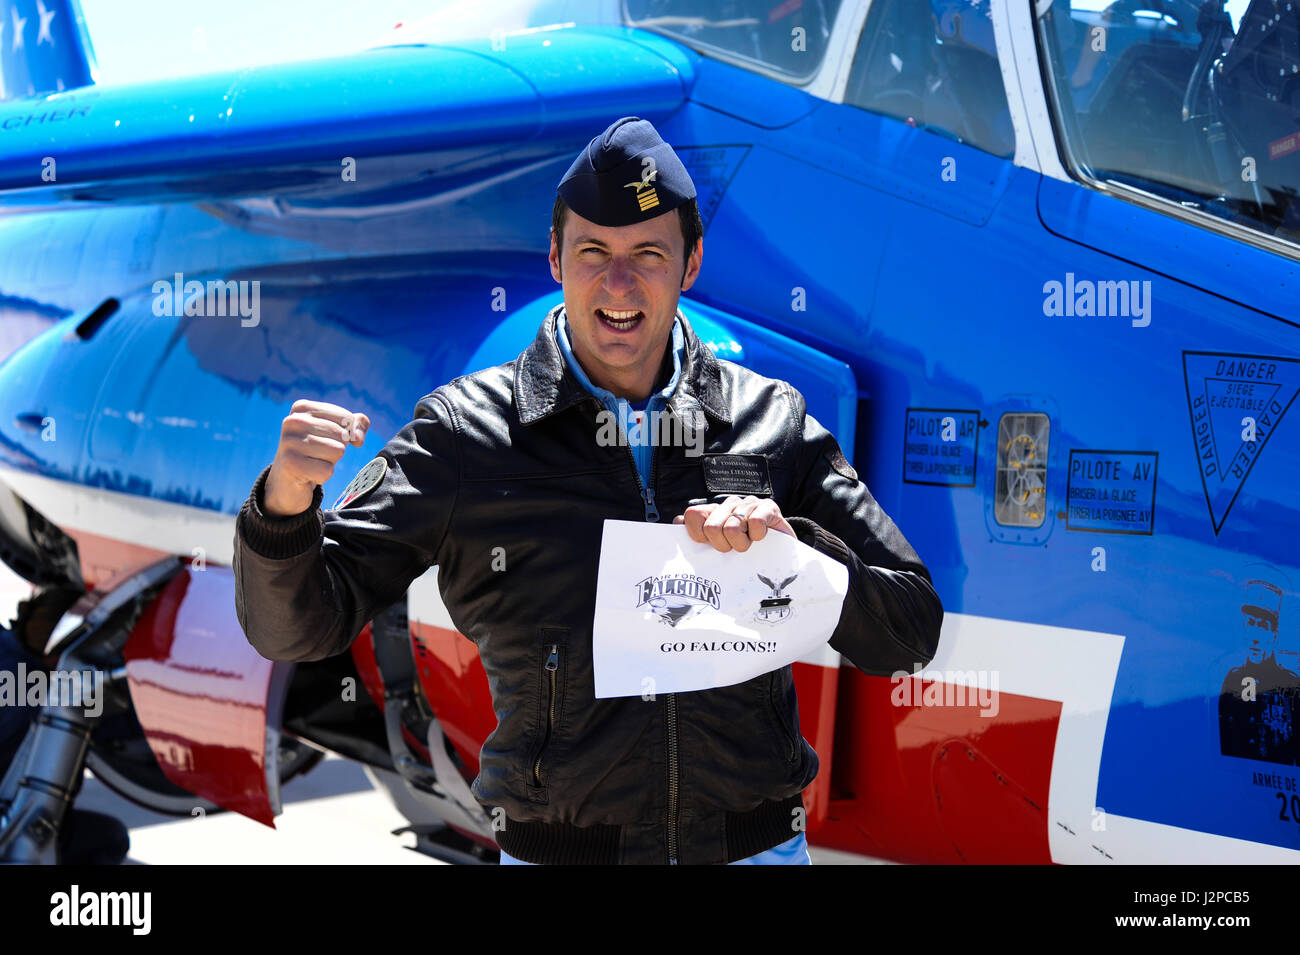 french air force maj nicolas lieumont patrouille france pilot